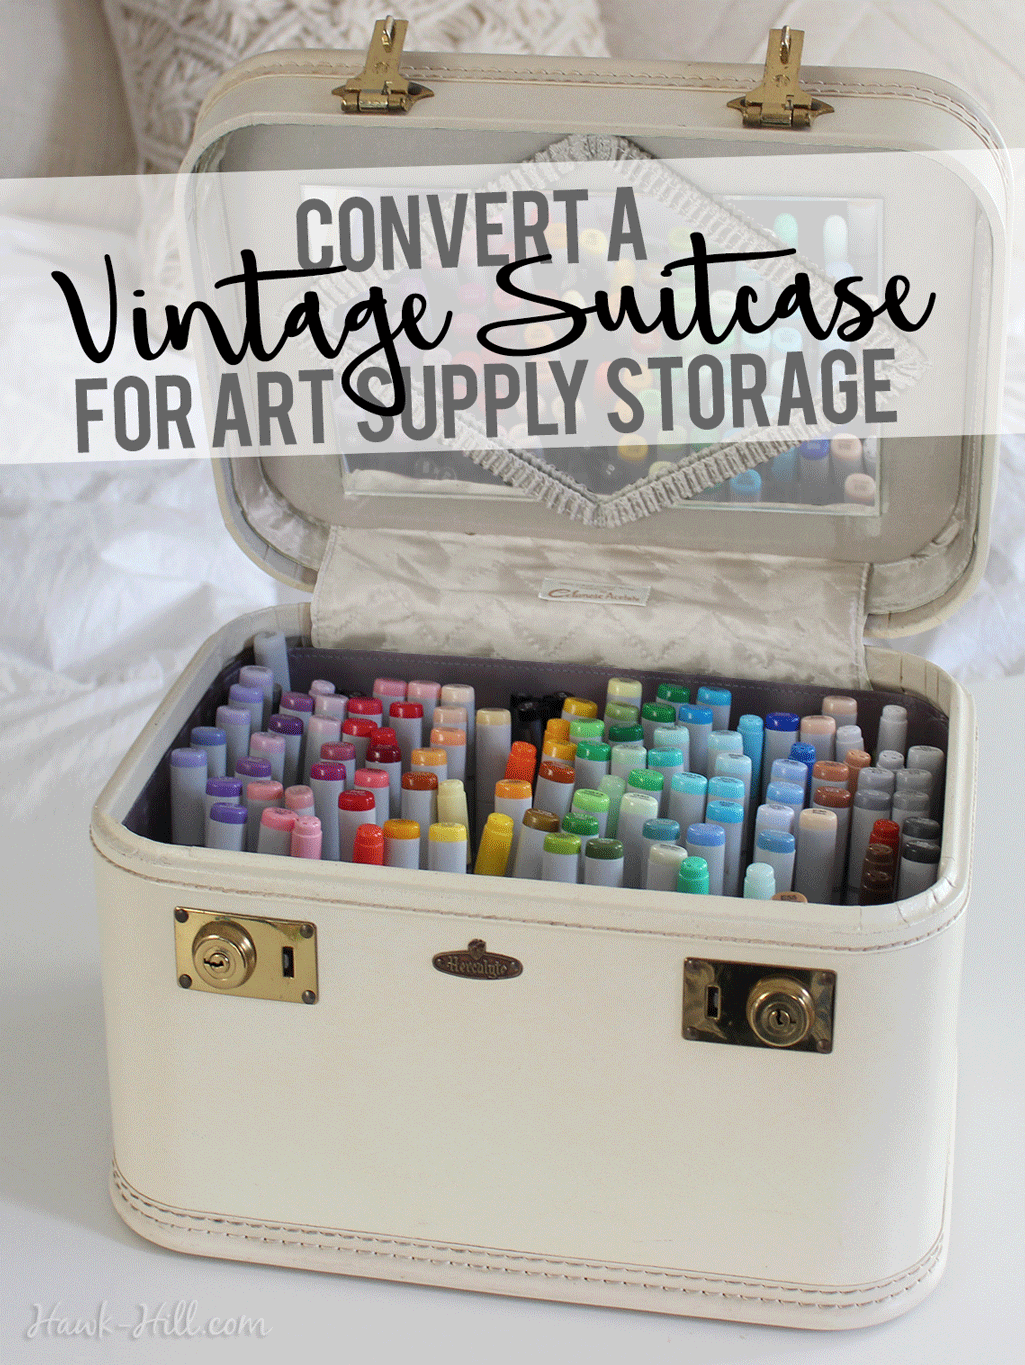 Merveilleux How To Convert A Vintage Cosmetic Suitcase Into An Organized Art Supply  Storage